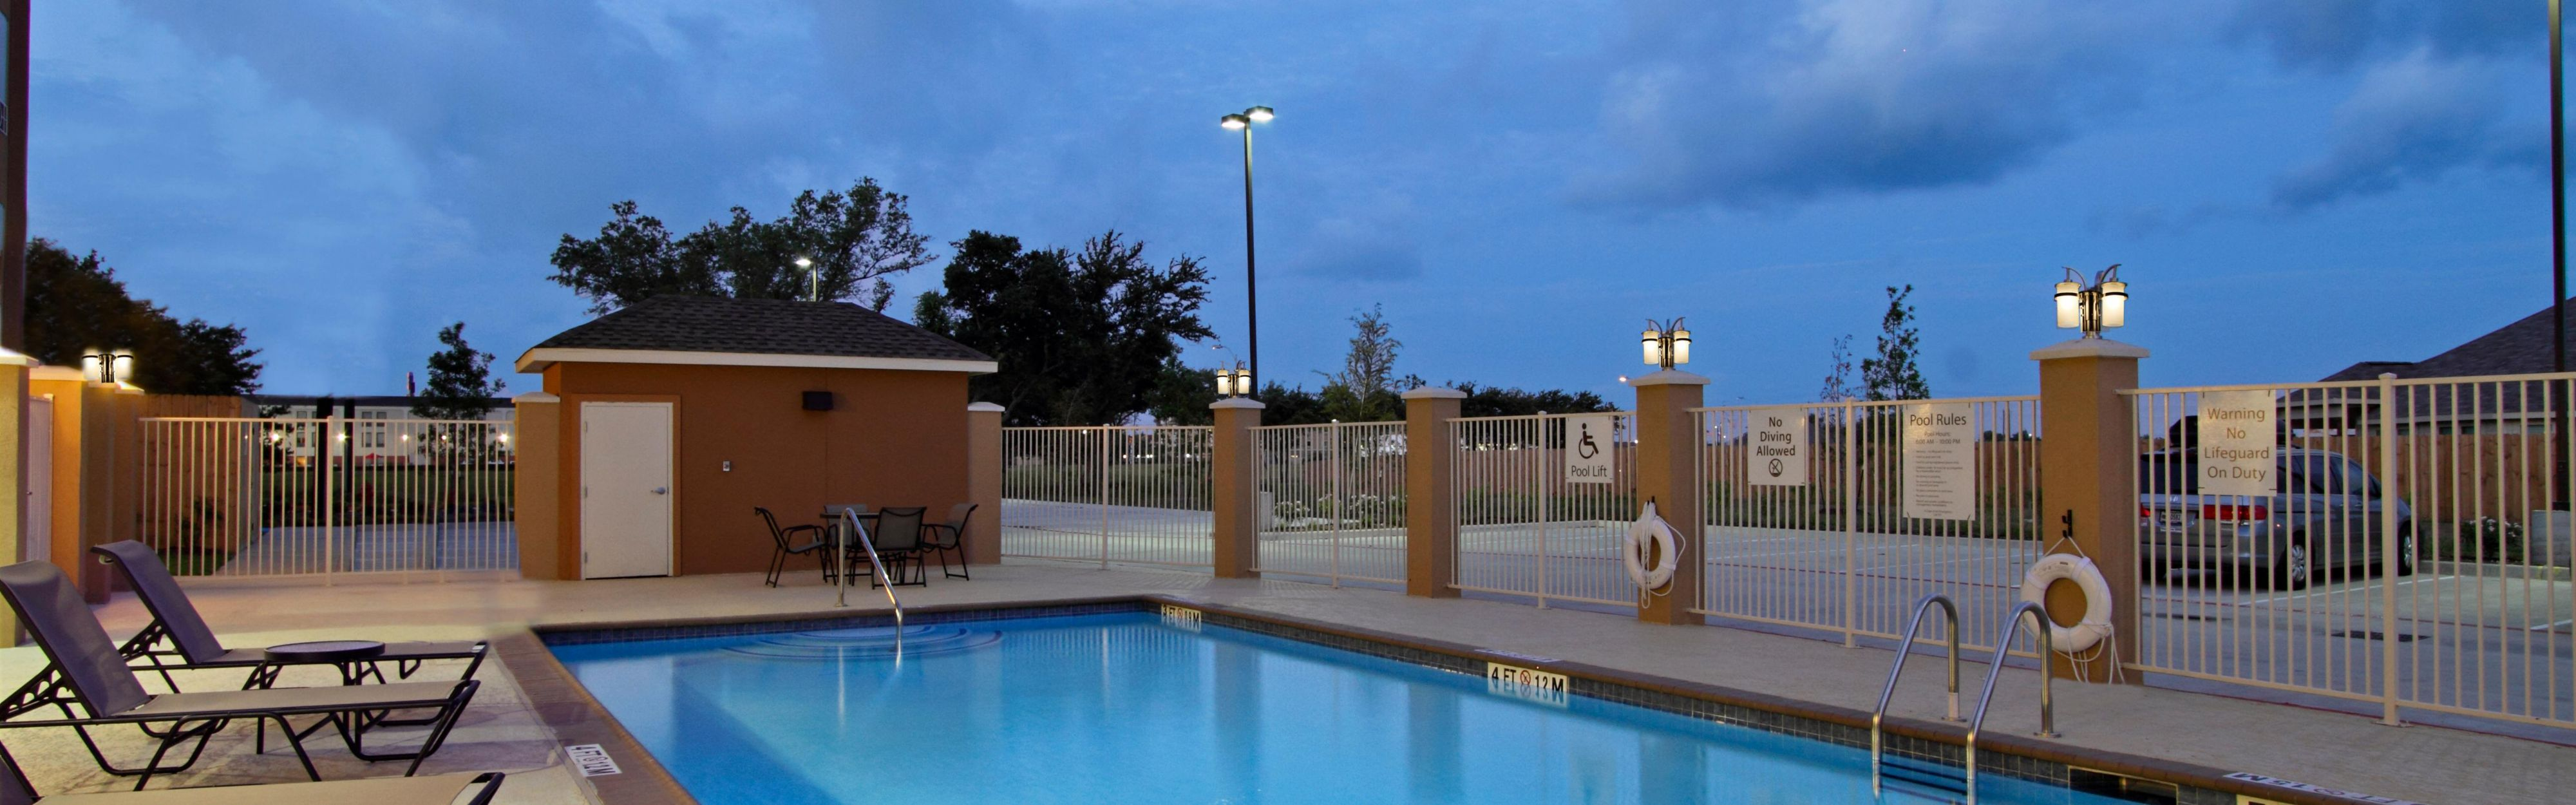 Holiday Inn Express & Suites Houston East - Baytown image 2